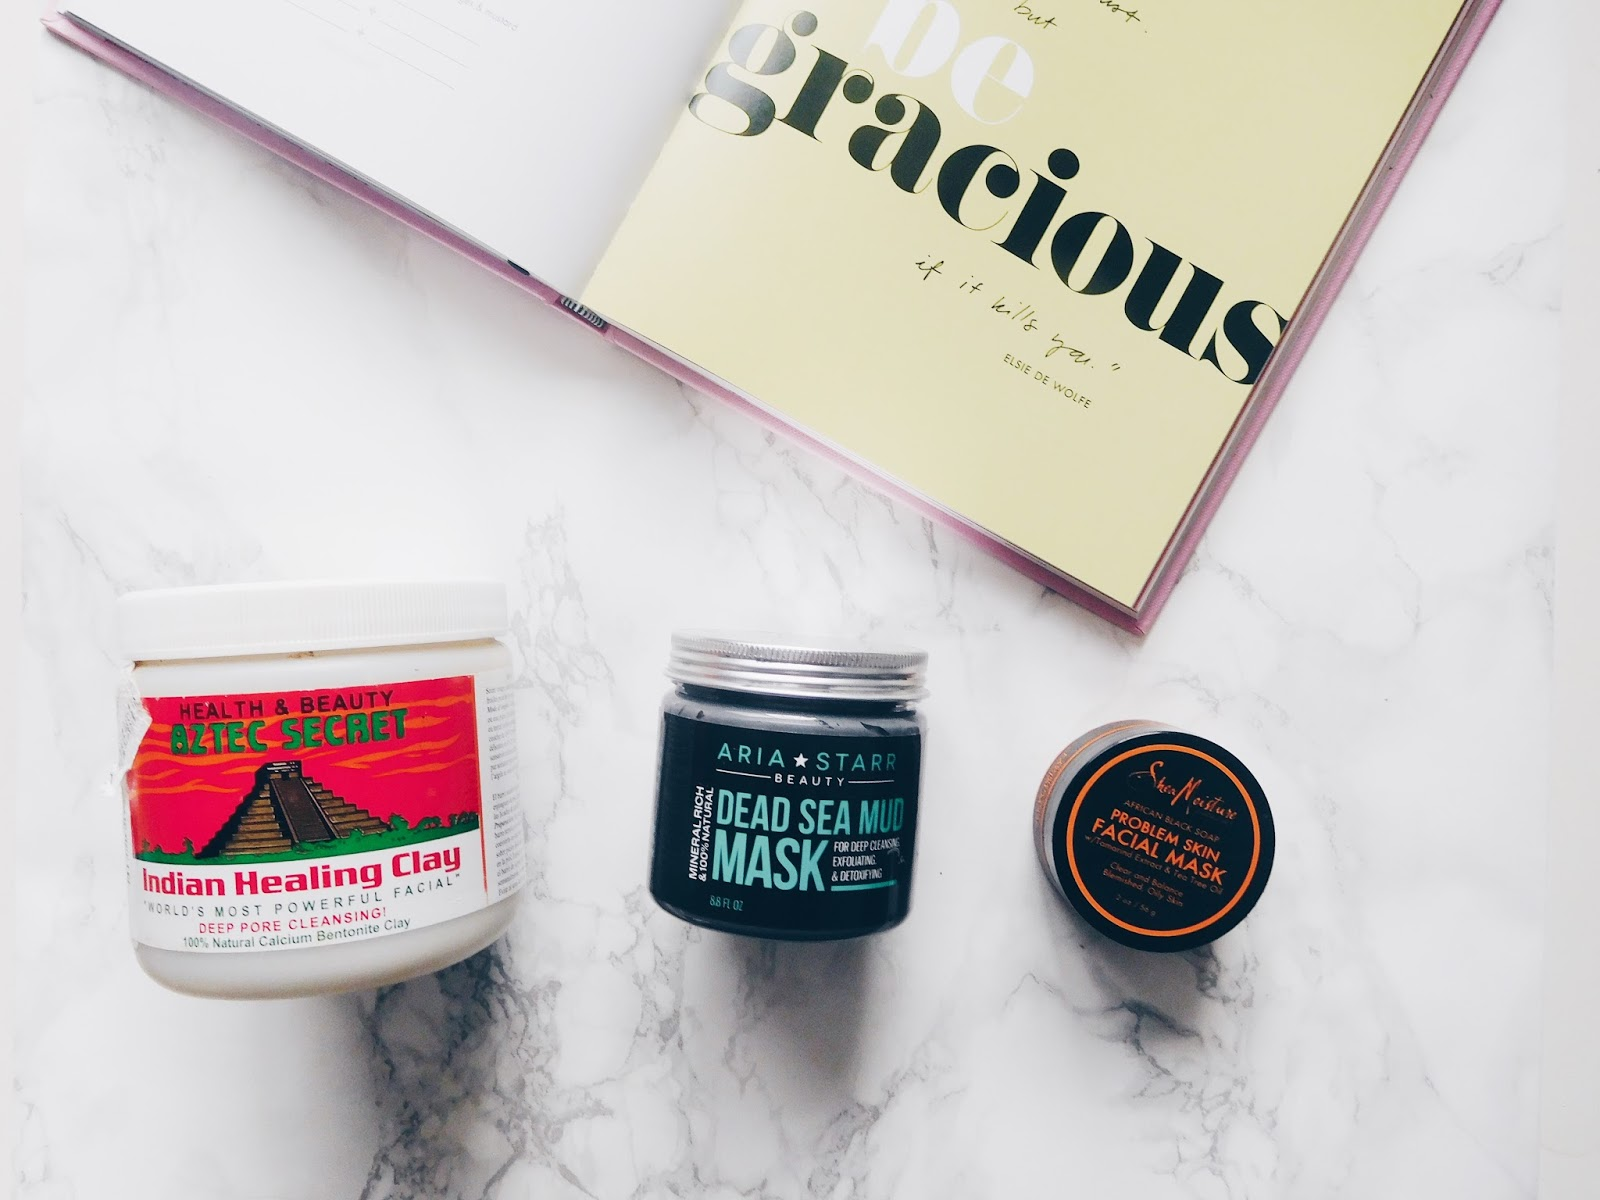 Three Bad Skin Day Face Masks